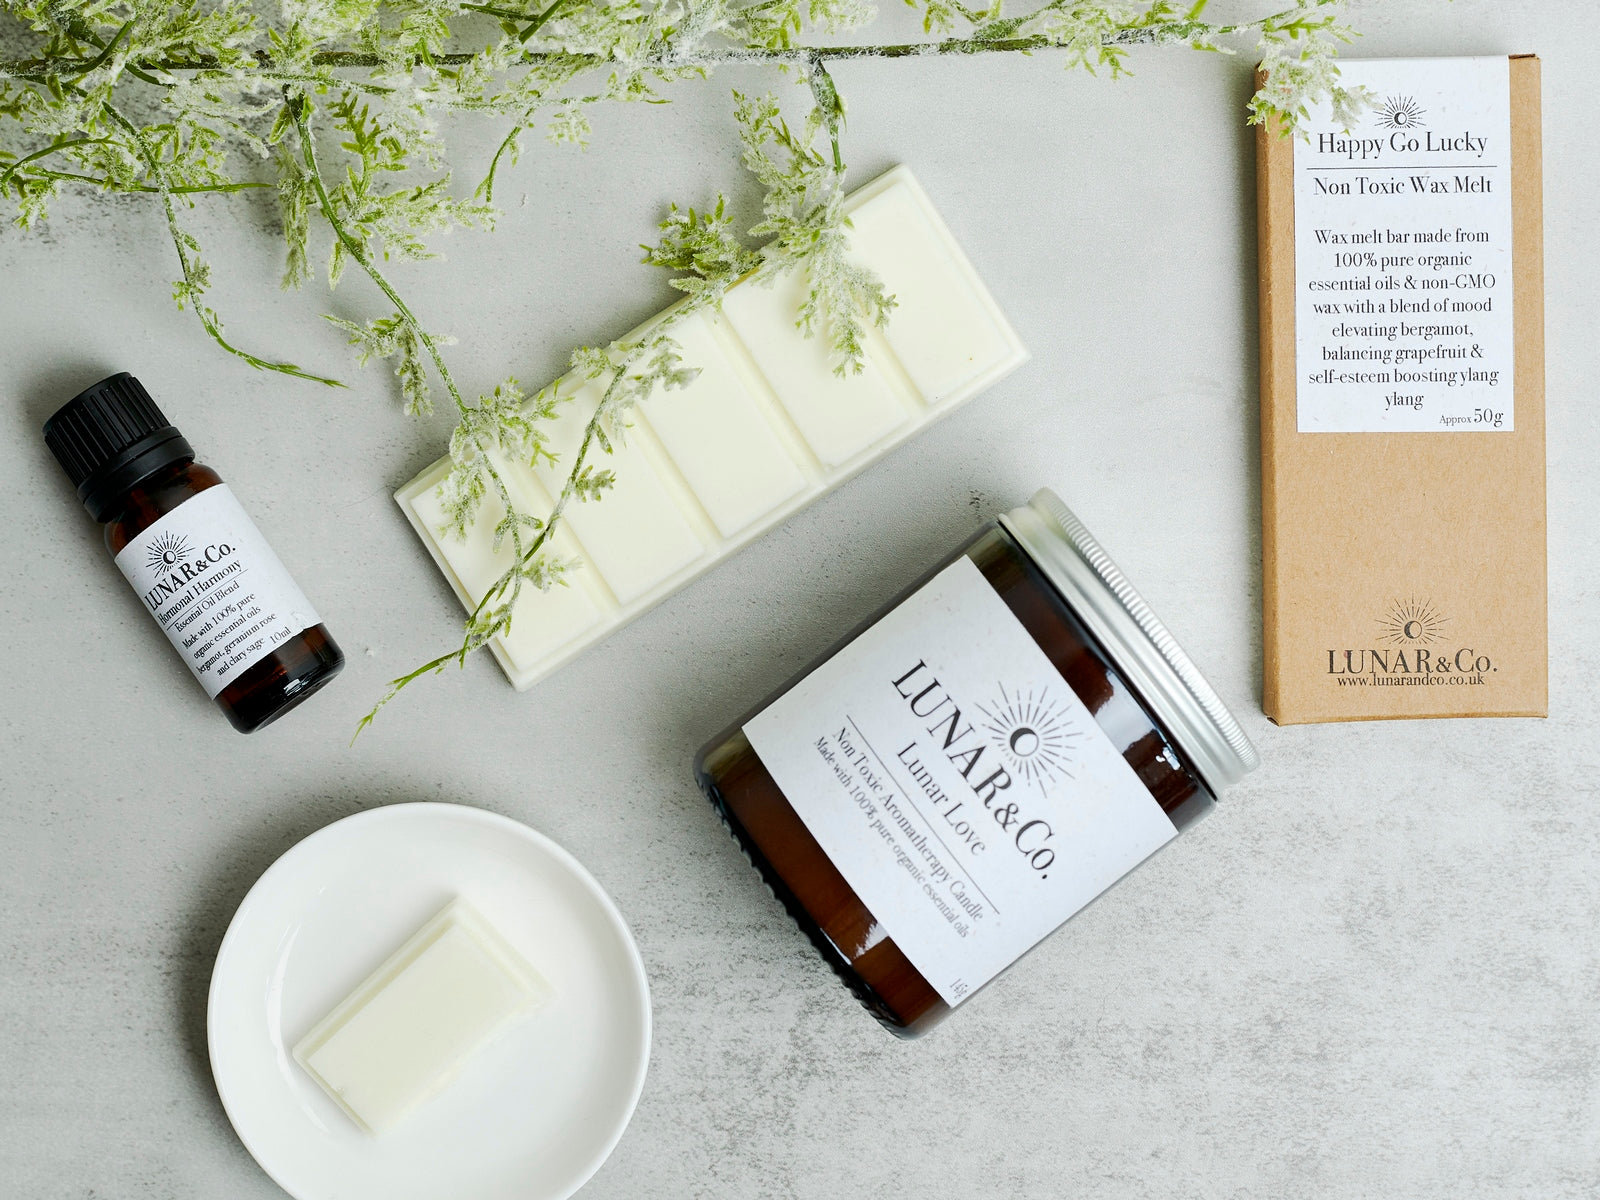 Lunar&Co. aromatherapy candles and essential oils